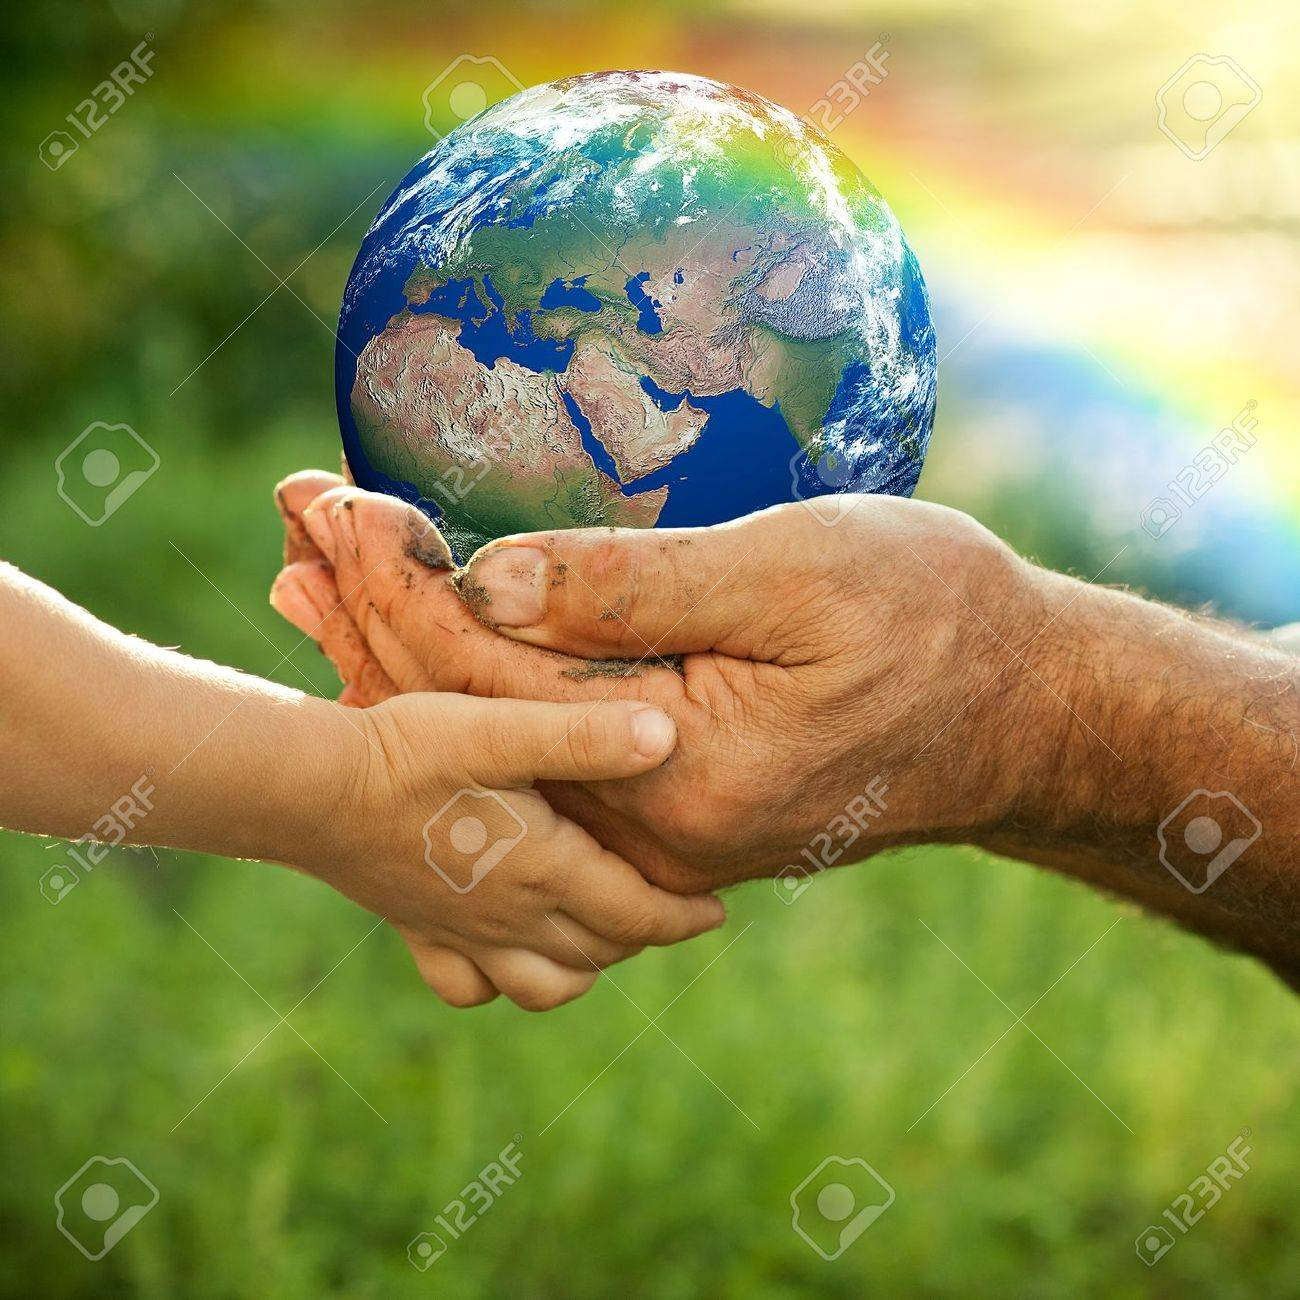 Hands of senior man and baby holding Earth against a rainbow in spring Ecology concept - 12580809